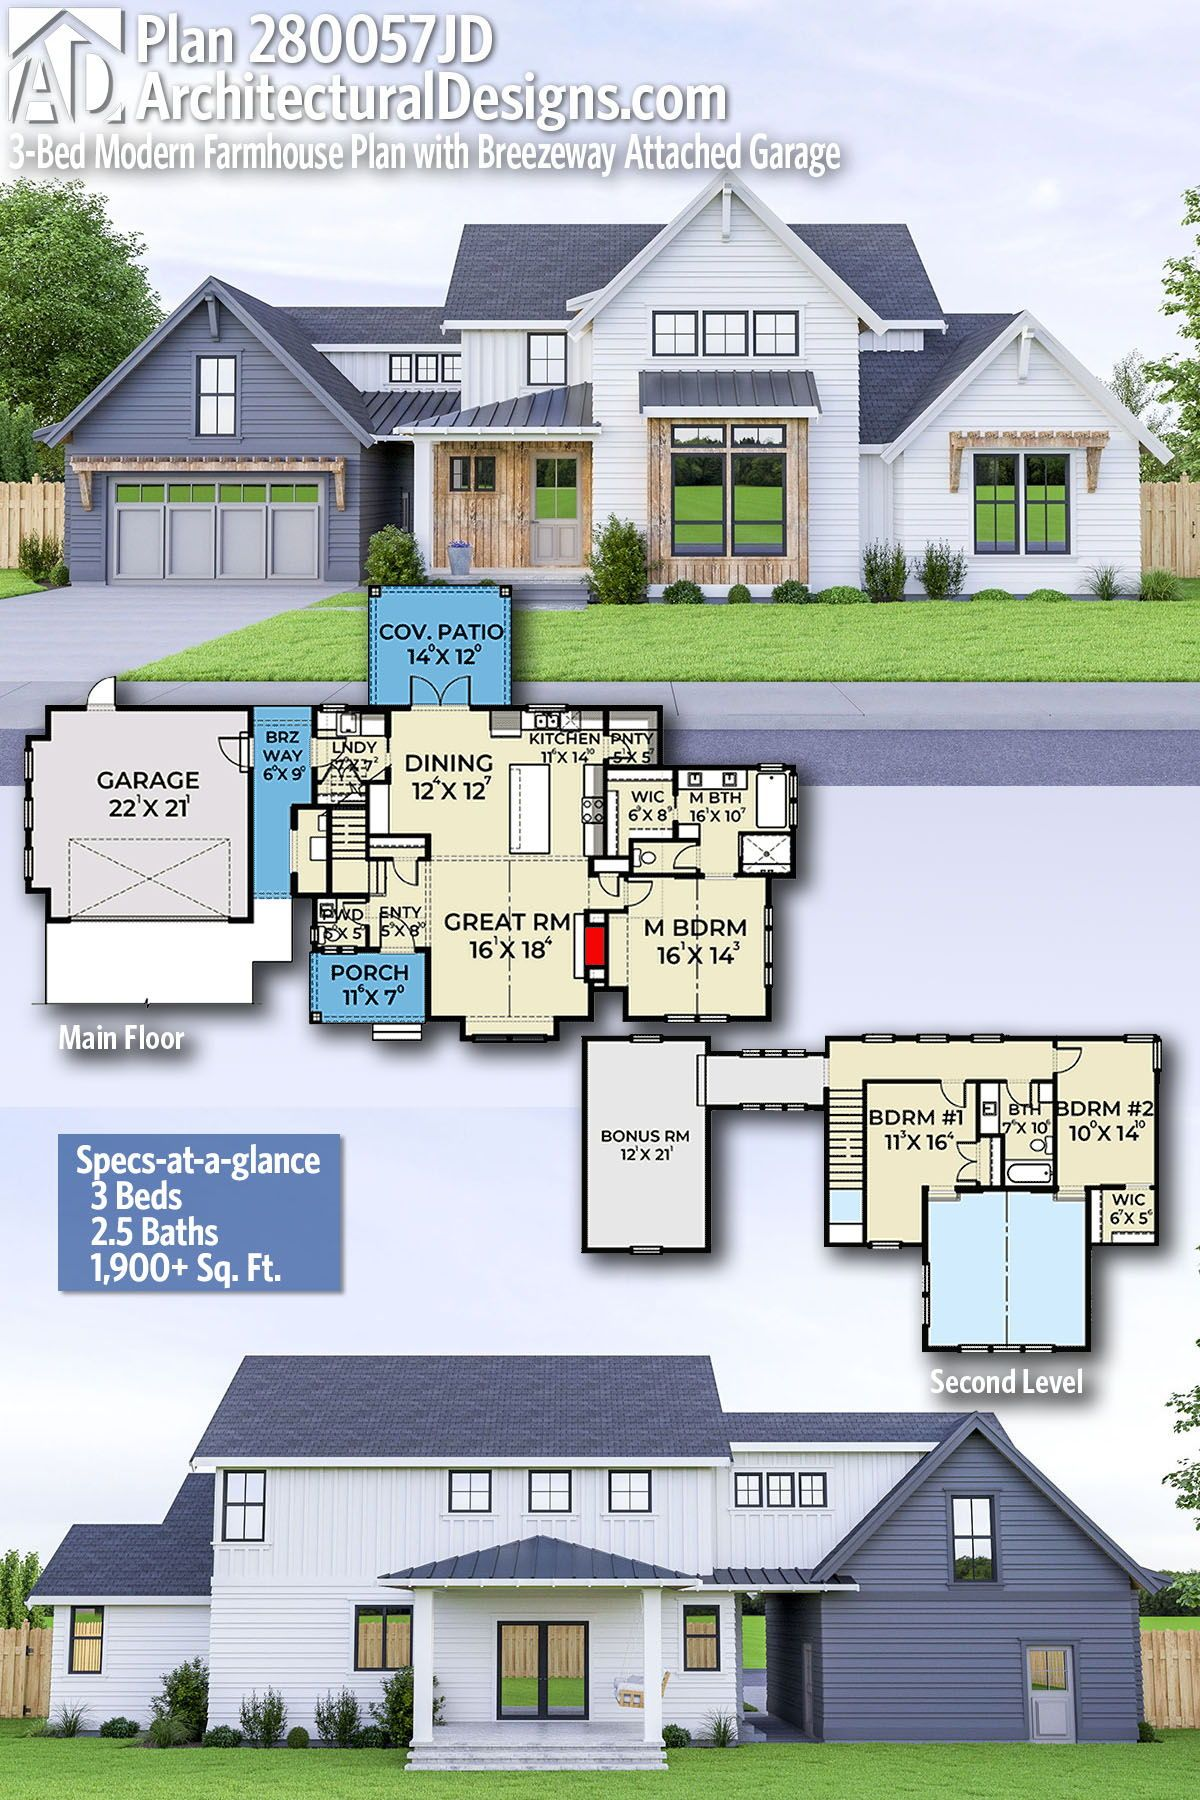 Plan 280057jwd 3 Bed Modern Farmhouse Plan With Breezeway Attached Garage Modern Farmhouse Plans Farmhouse Plans Farmhouse Floor Plans